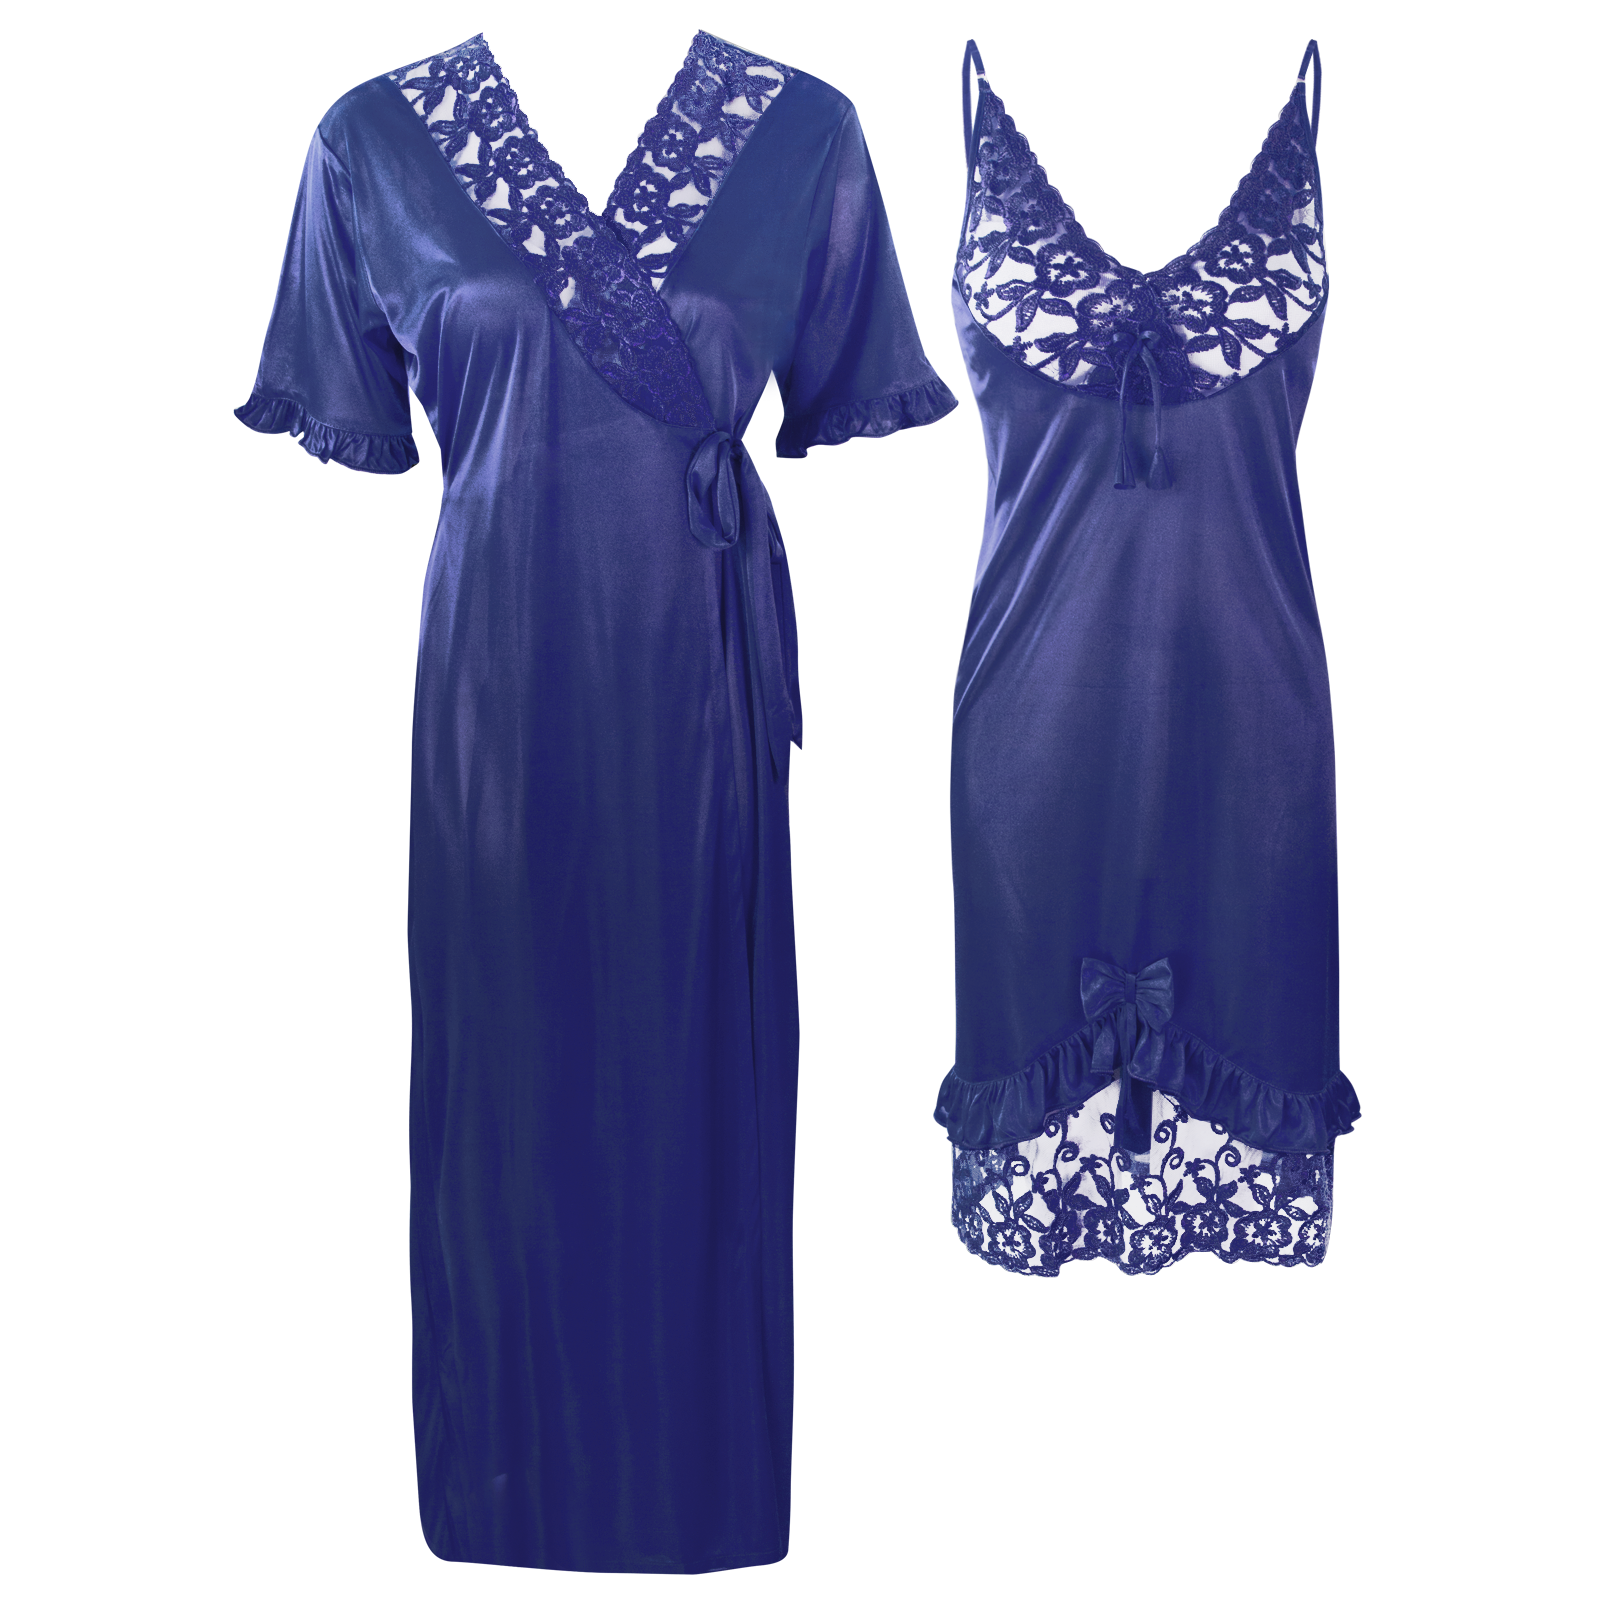 Colour: Navy 2Pcs Women Sexy Silk Satin Sleepwear Lingerie Nightie Nightdress Robe Pajamas UK Size: One Size